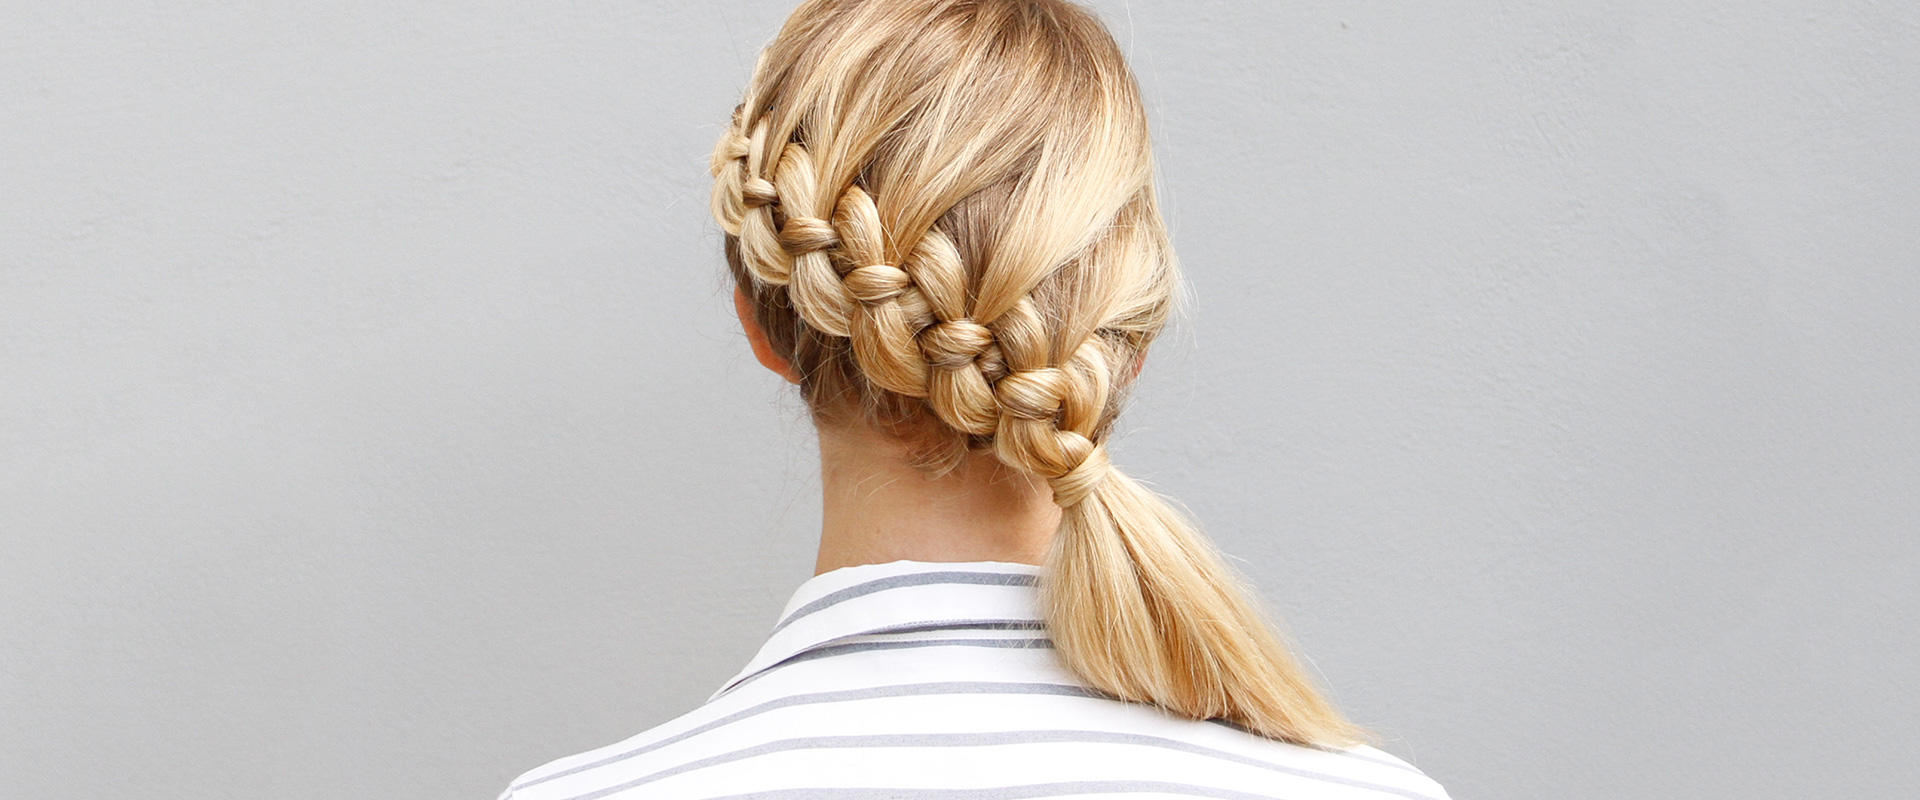 Try This! The Four-Strand Braid Made Easy-ish | more.com